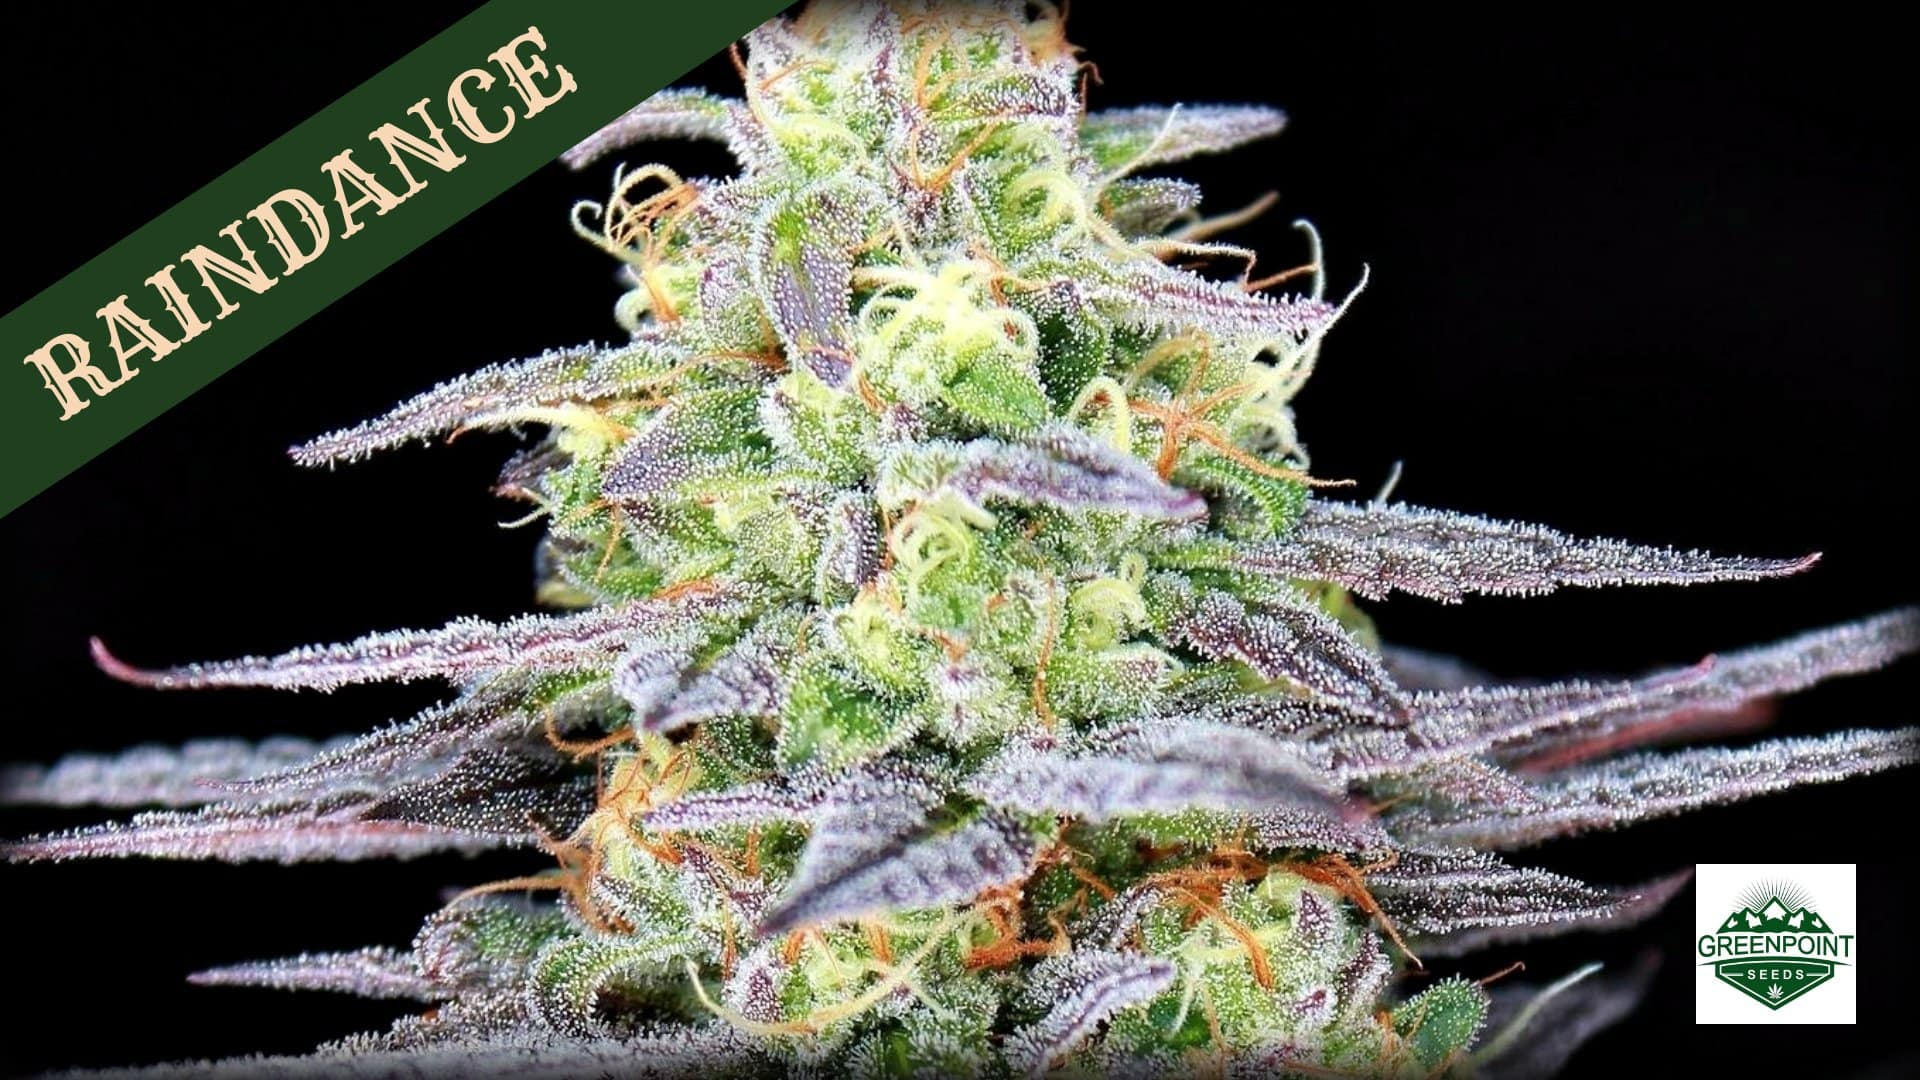 Raindance Cannabis Seeds